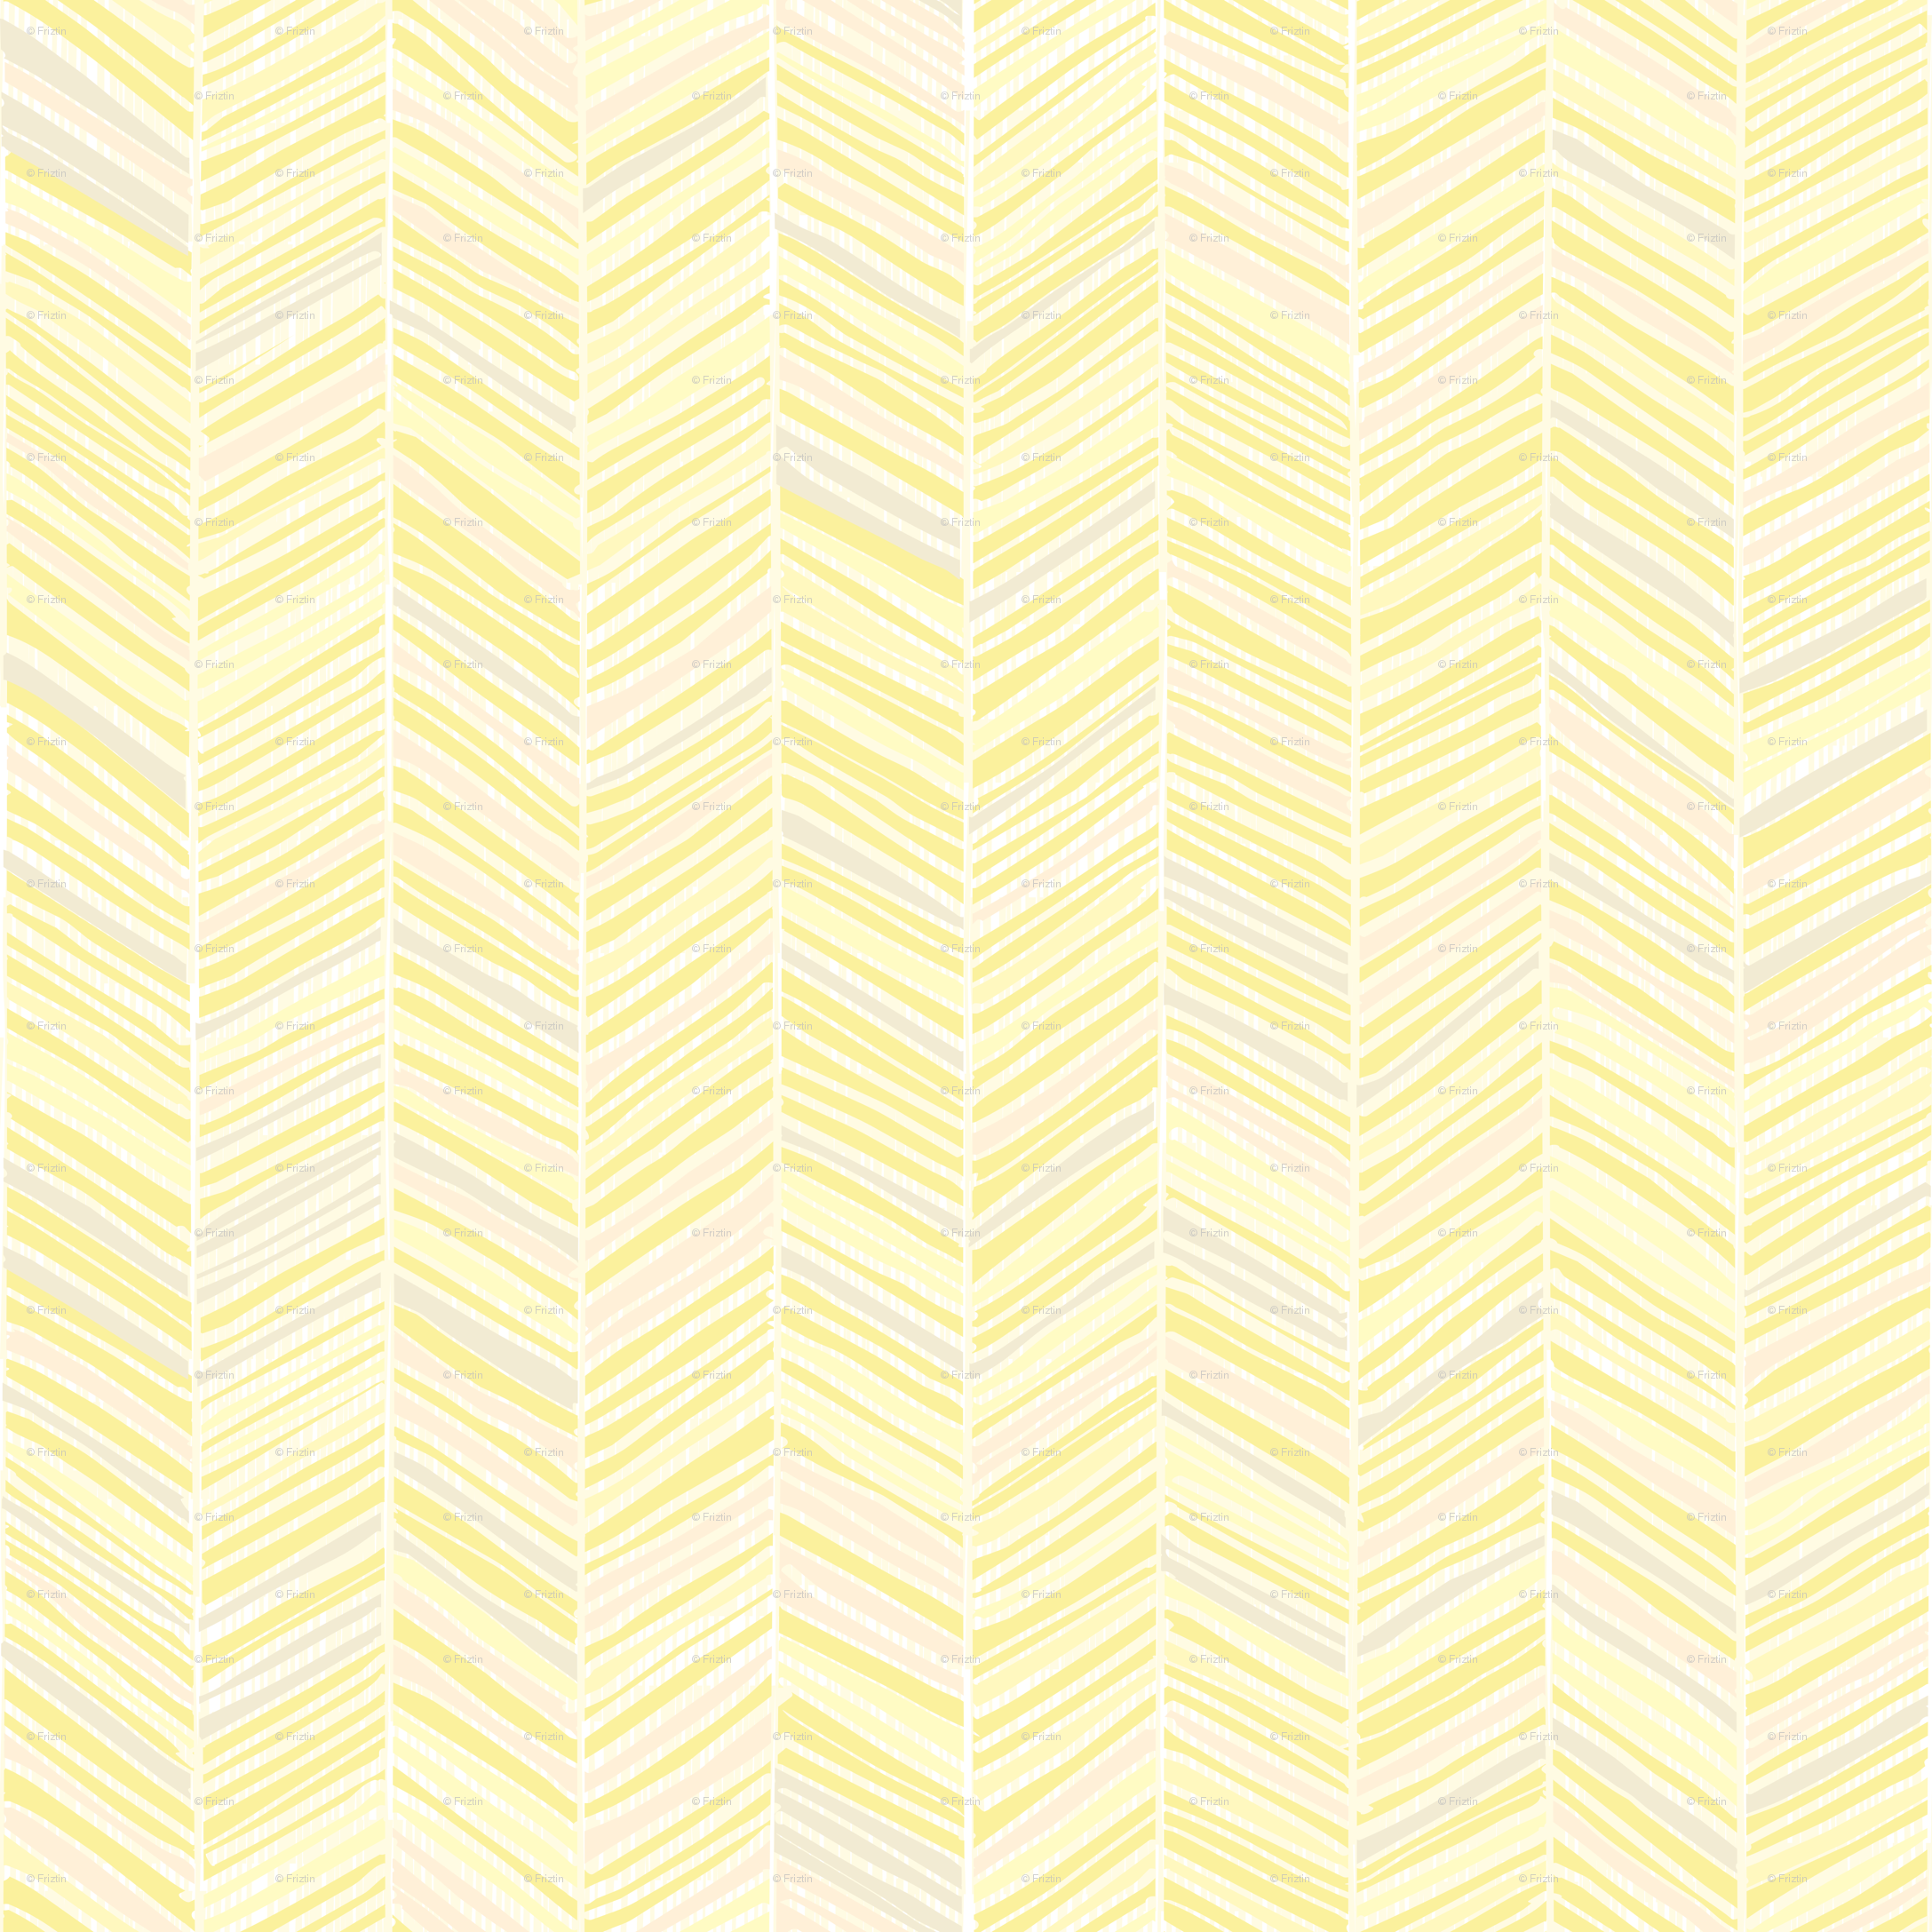 pastel yellow wallpaper | Galleryimage.co